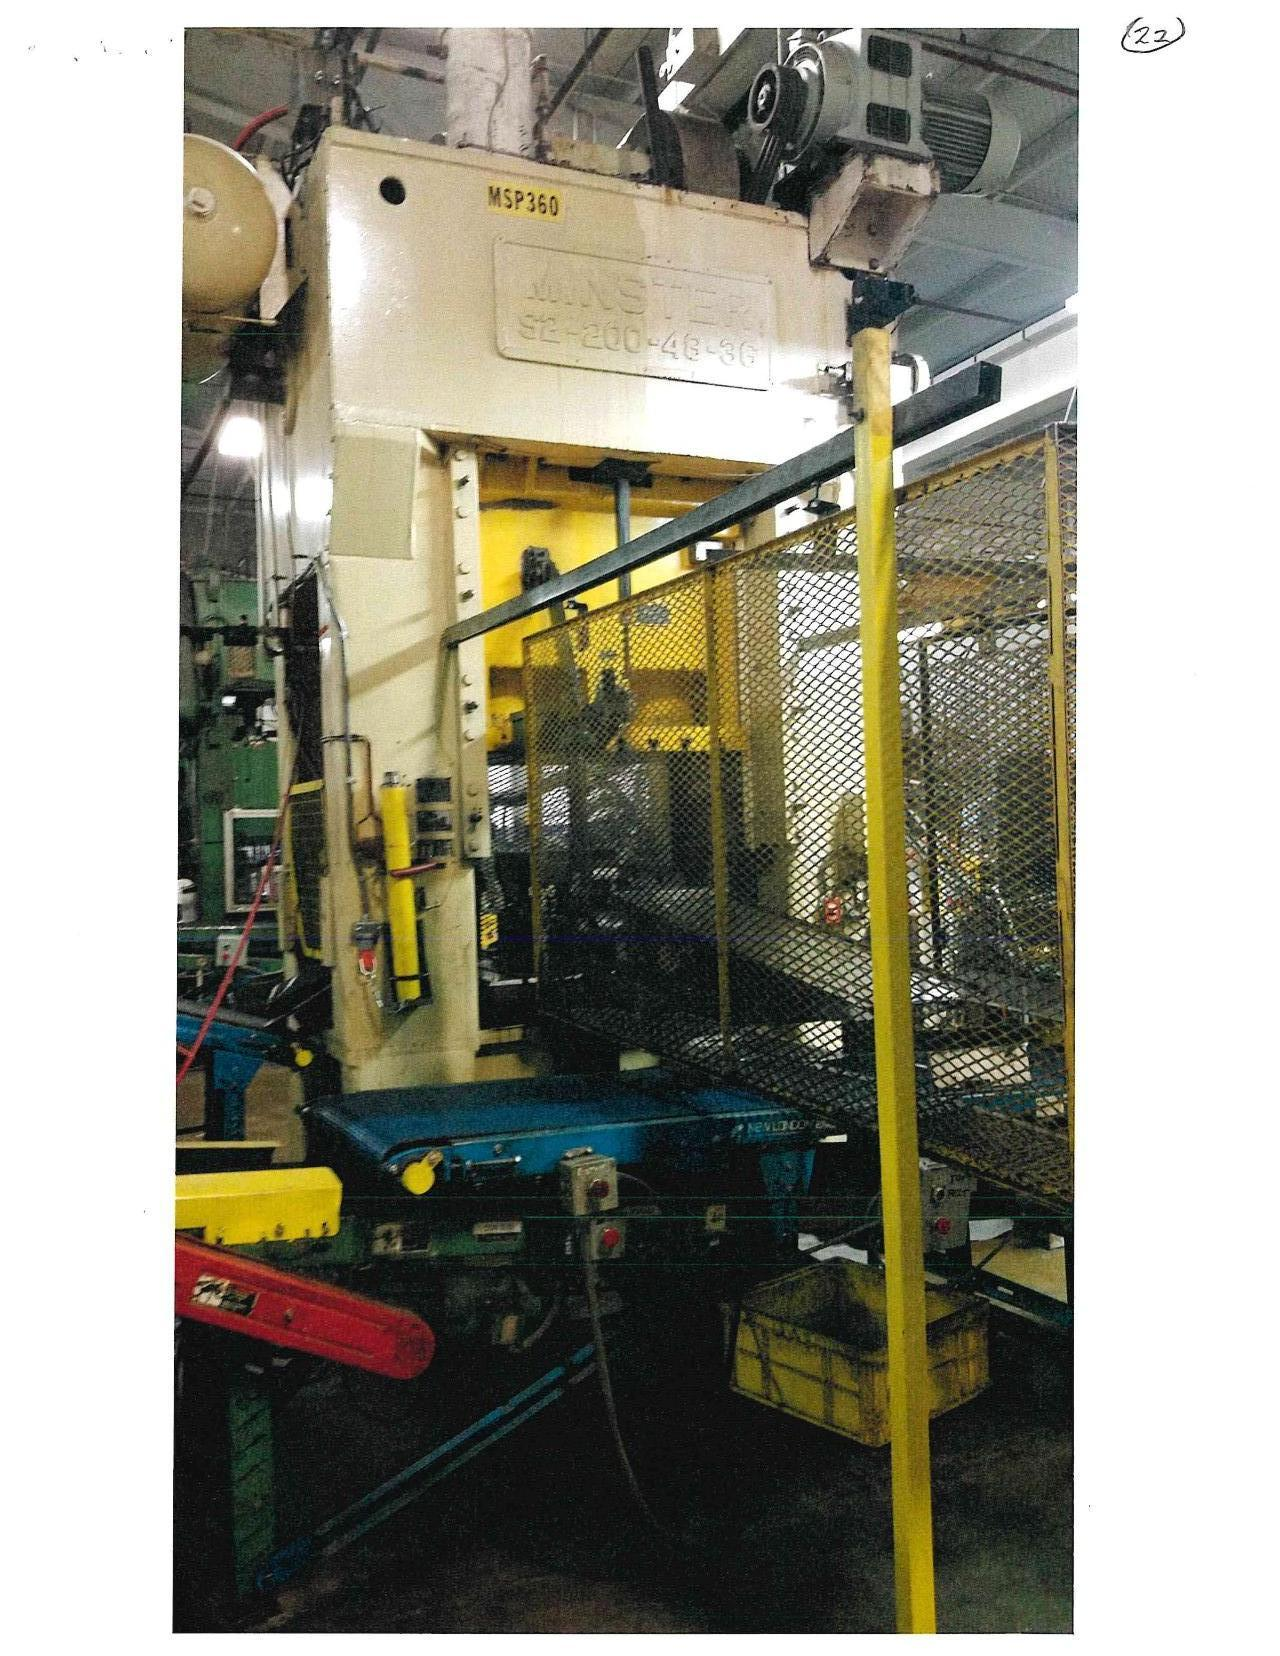 MINISTER 200 TON STRAIGHT SIDE PRESS